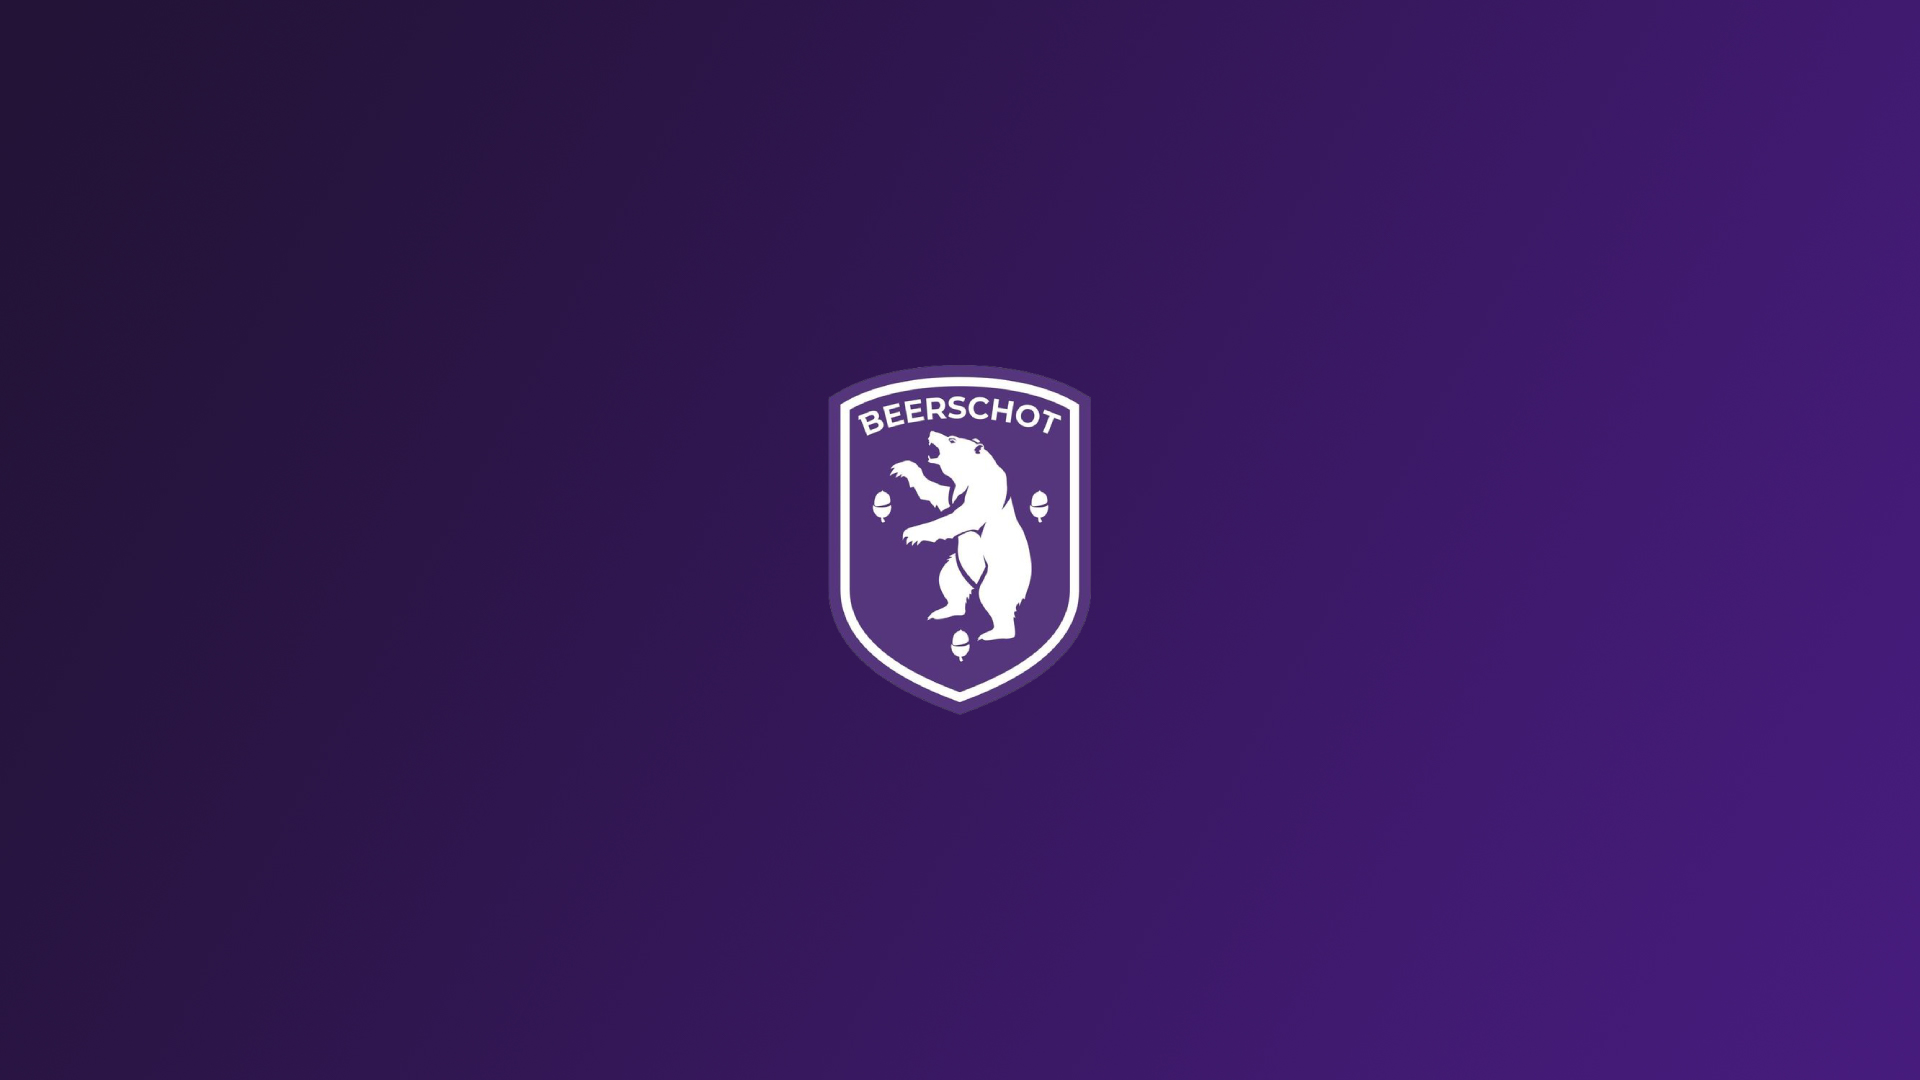 Beerschot Football Club